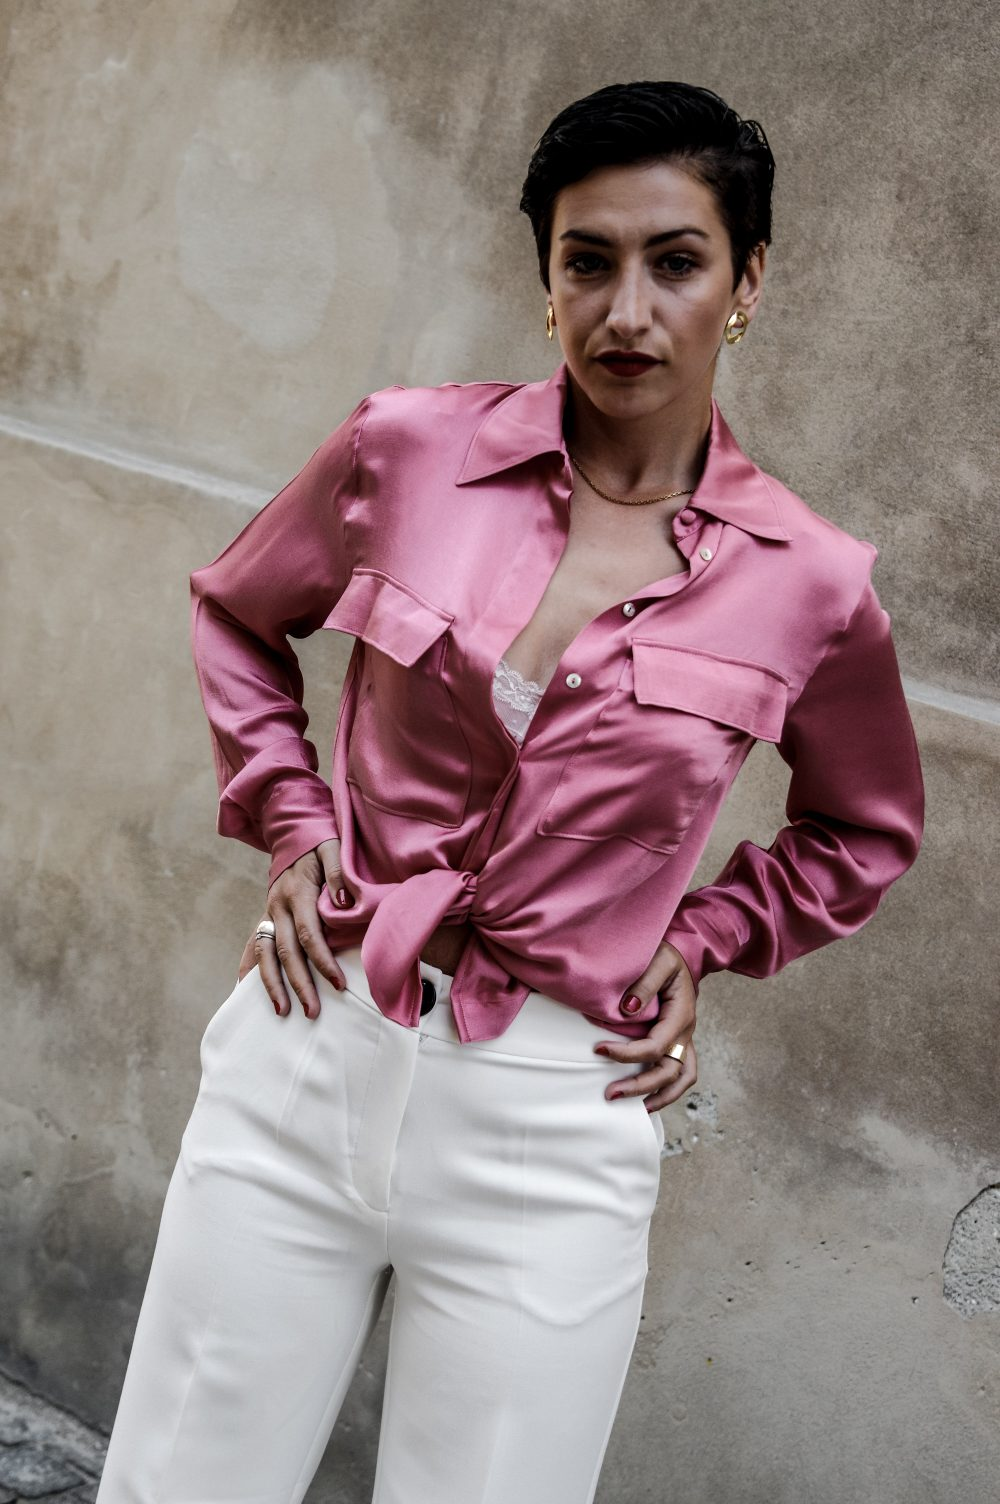 satin summer shirt blouse, mango shirt, work wear shirt,summer shirts and blouses for work and casual, summer fashion, summer style 2018, summer outfits, work wear summer outfits, mihabalan.com